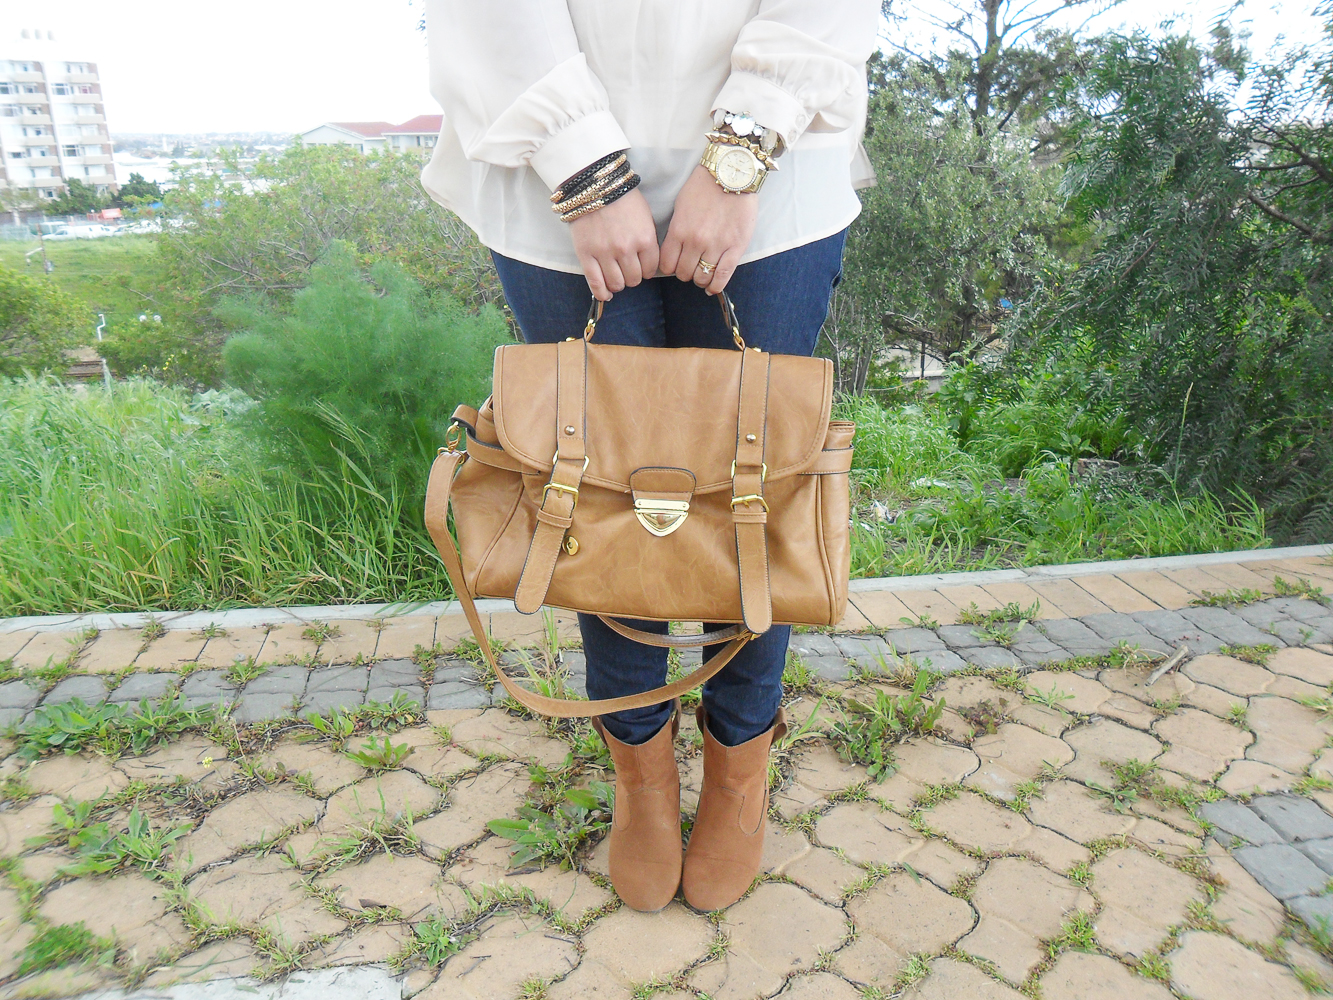 ankle boots, cream blouse, satchel, gold arm candy, gold watch